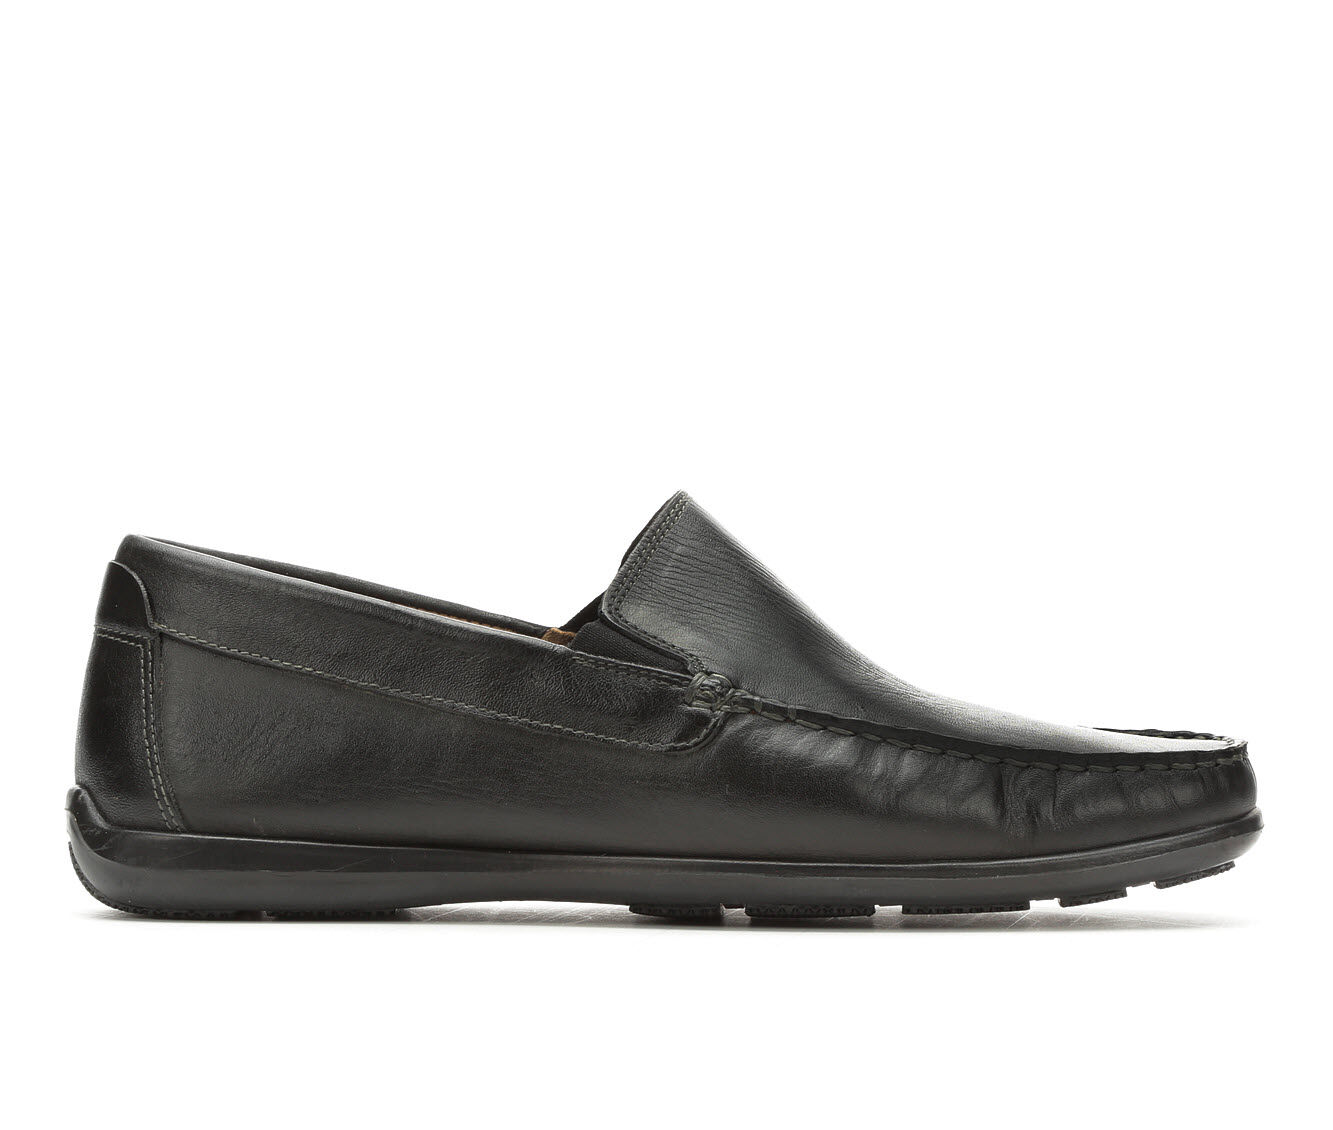 Men's Florsheim Intrepid Venetian Loafers Black